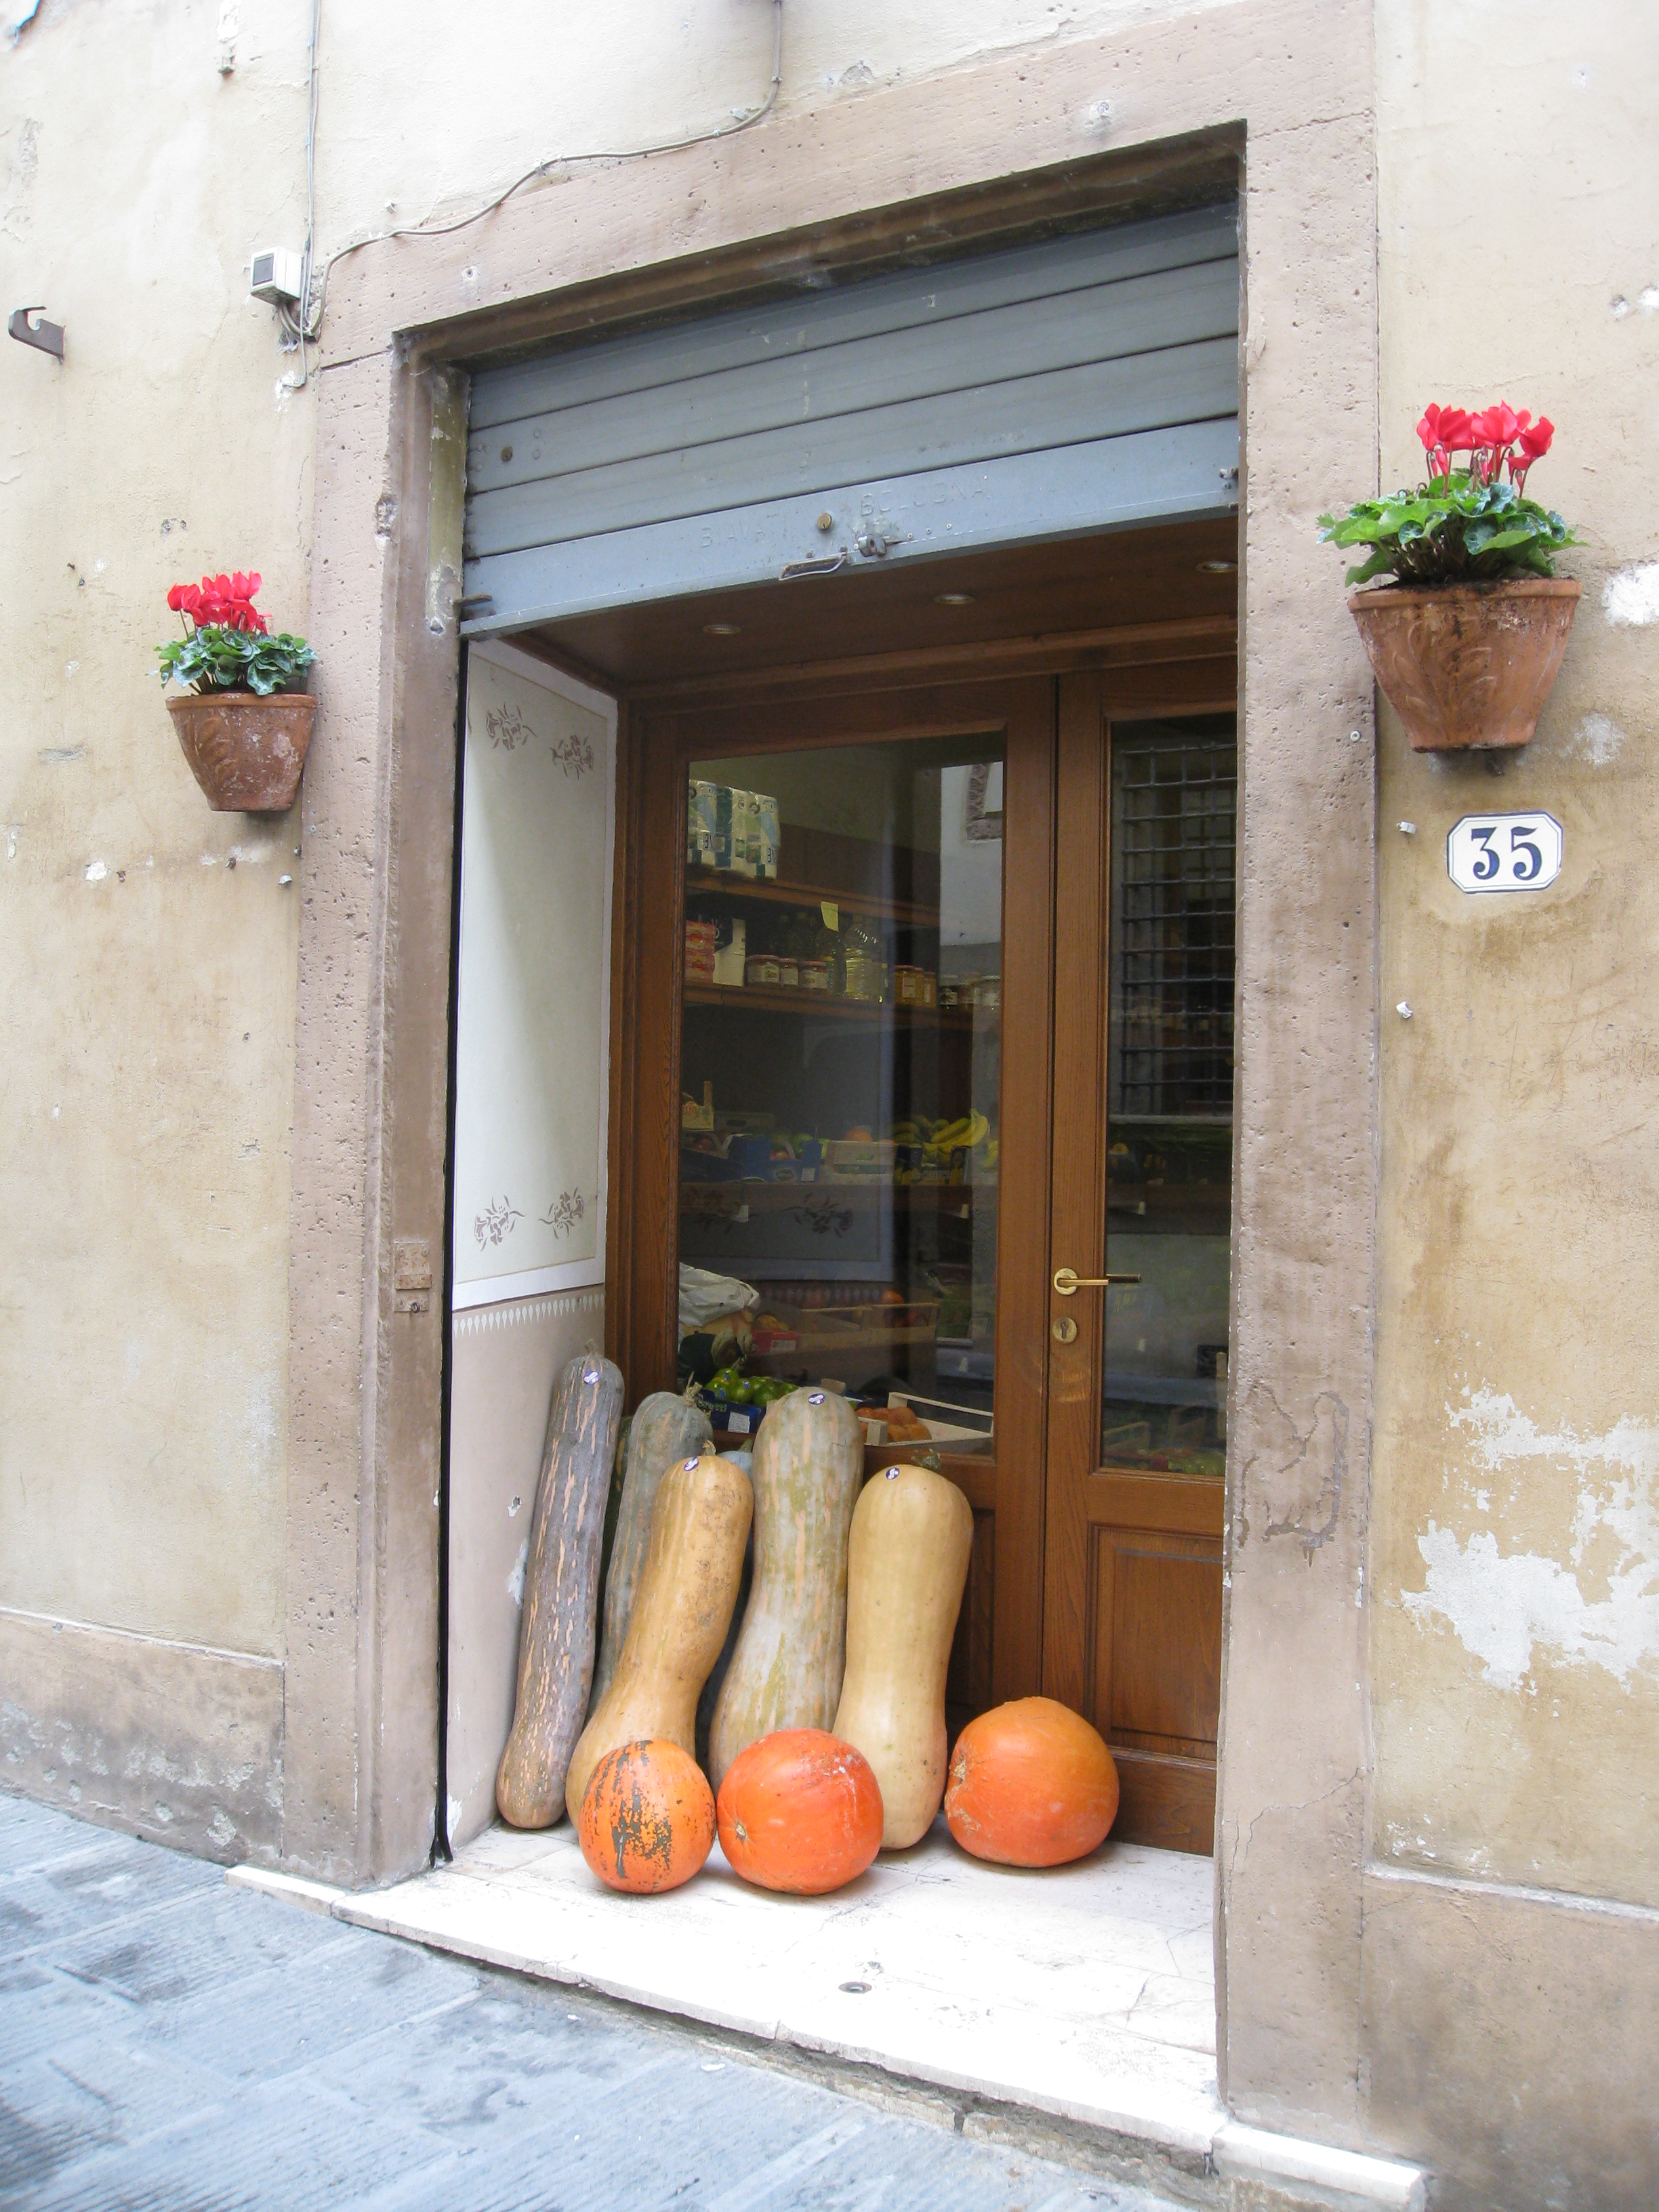 Giant squash decorate the store front for fall in Colle Val D'elsa.